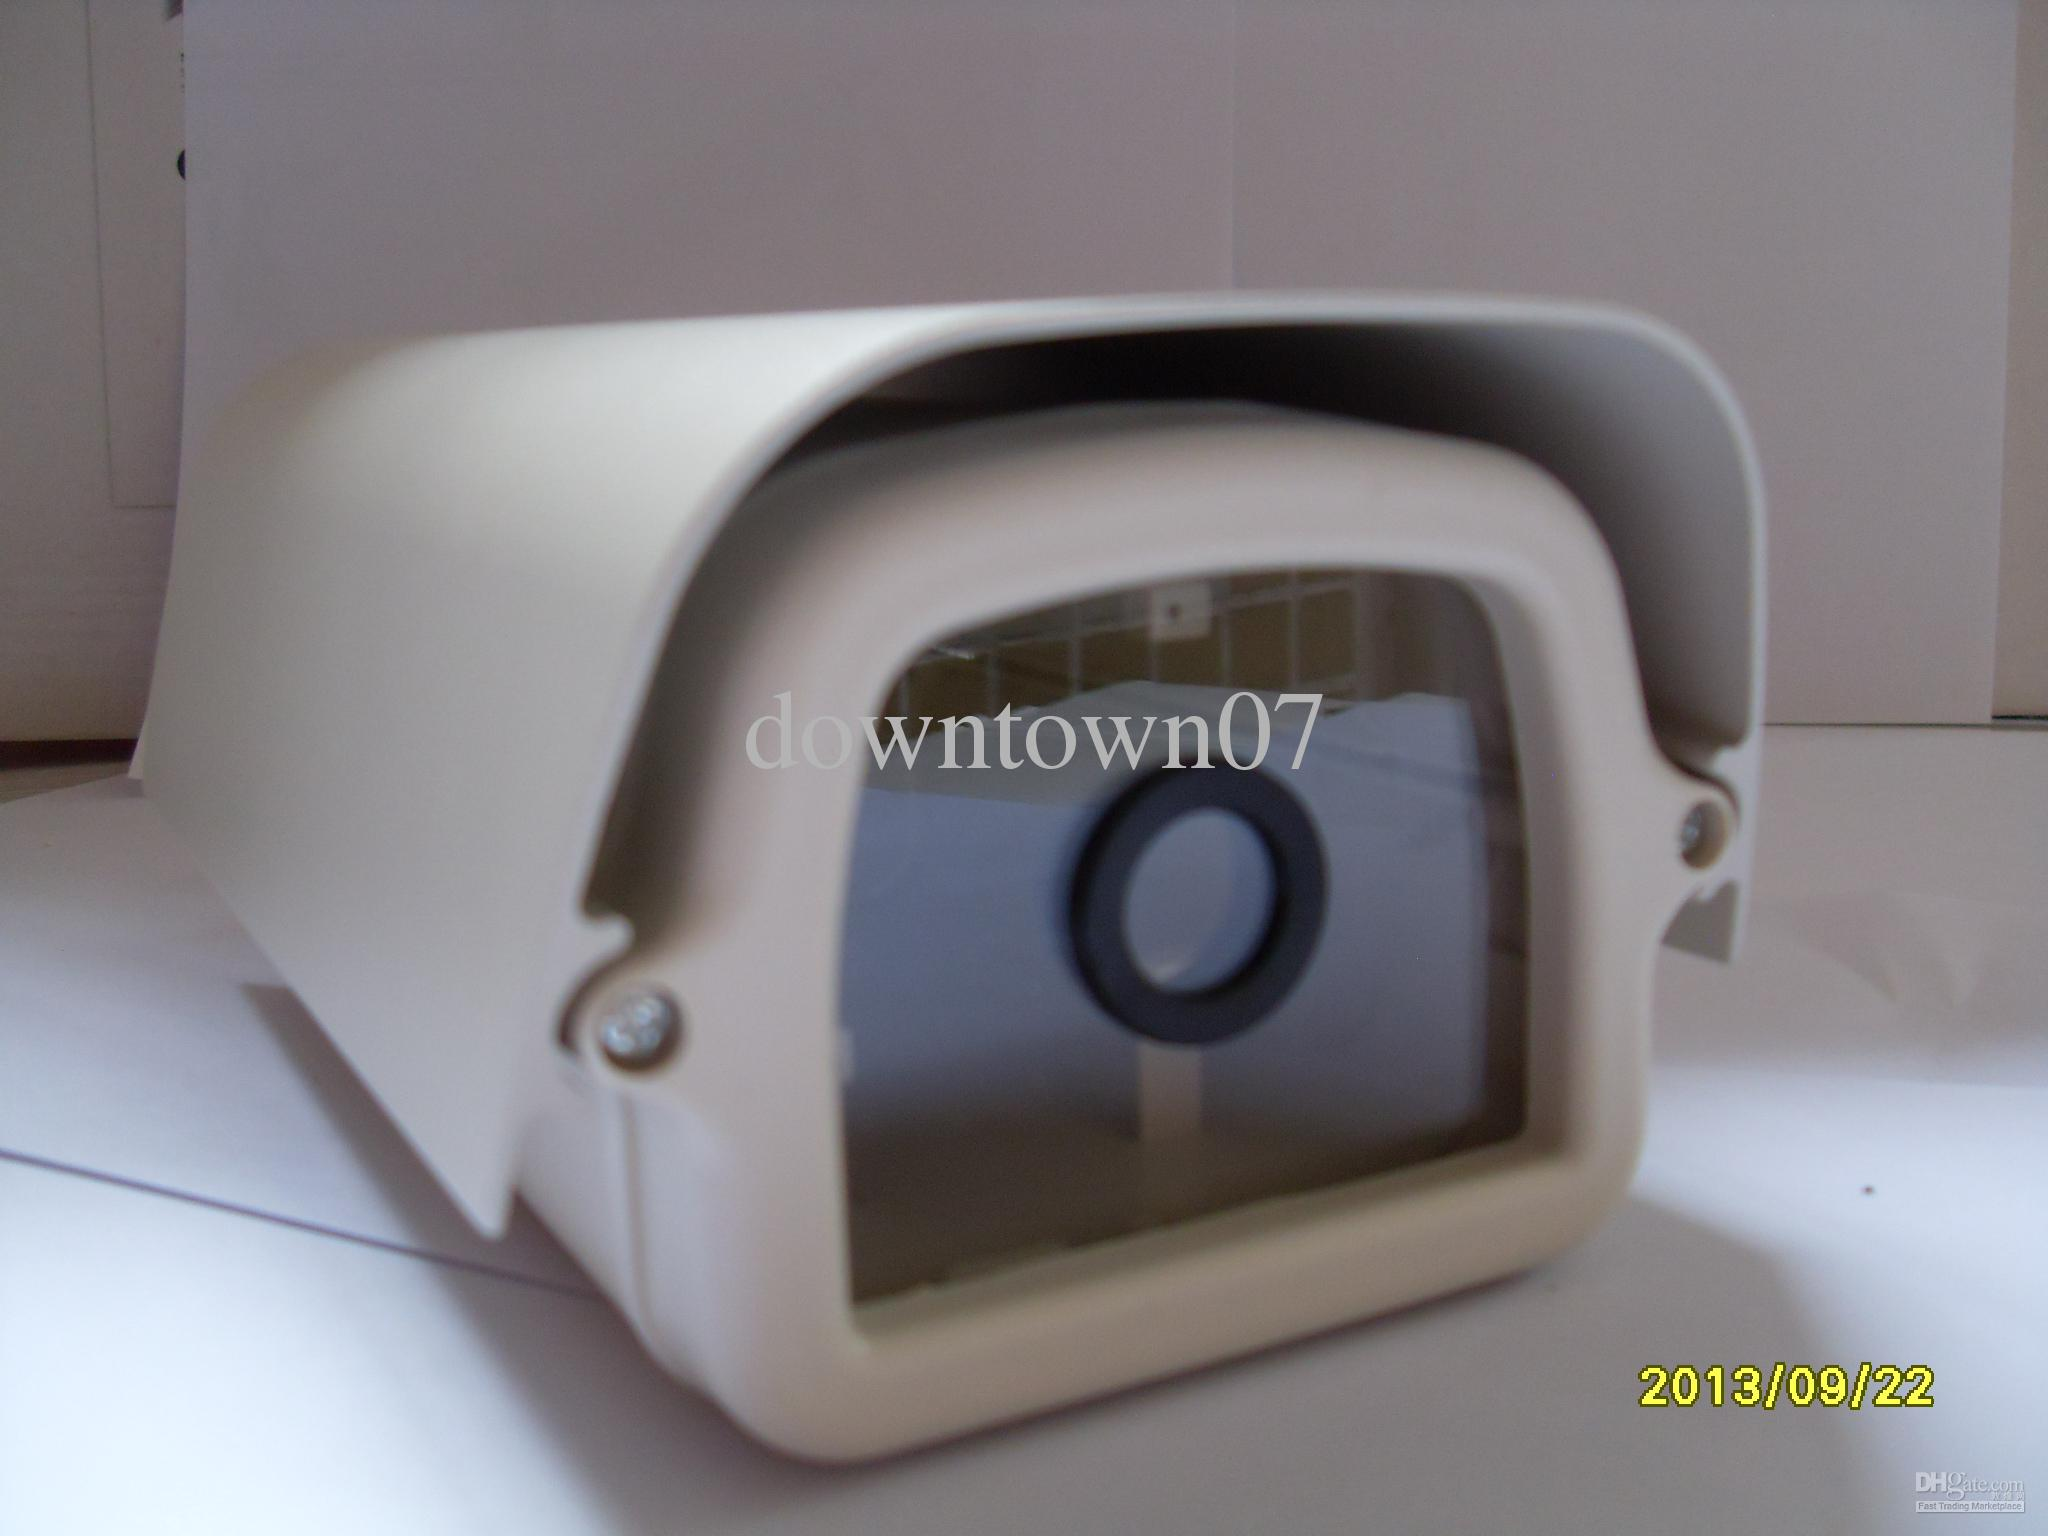 Picture of: 2020 Outdoor Cctv Small Camera Housing Main Part With Abs From Downtown07 24 77 Dhgate Com